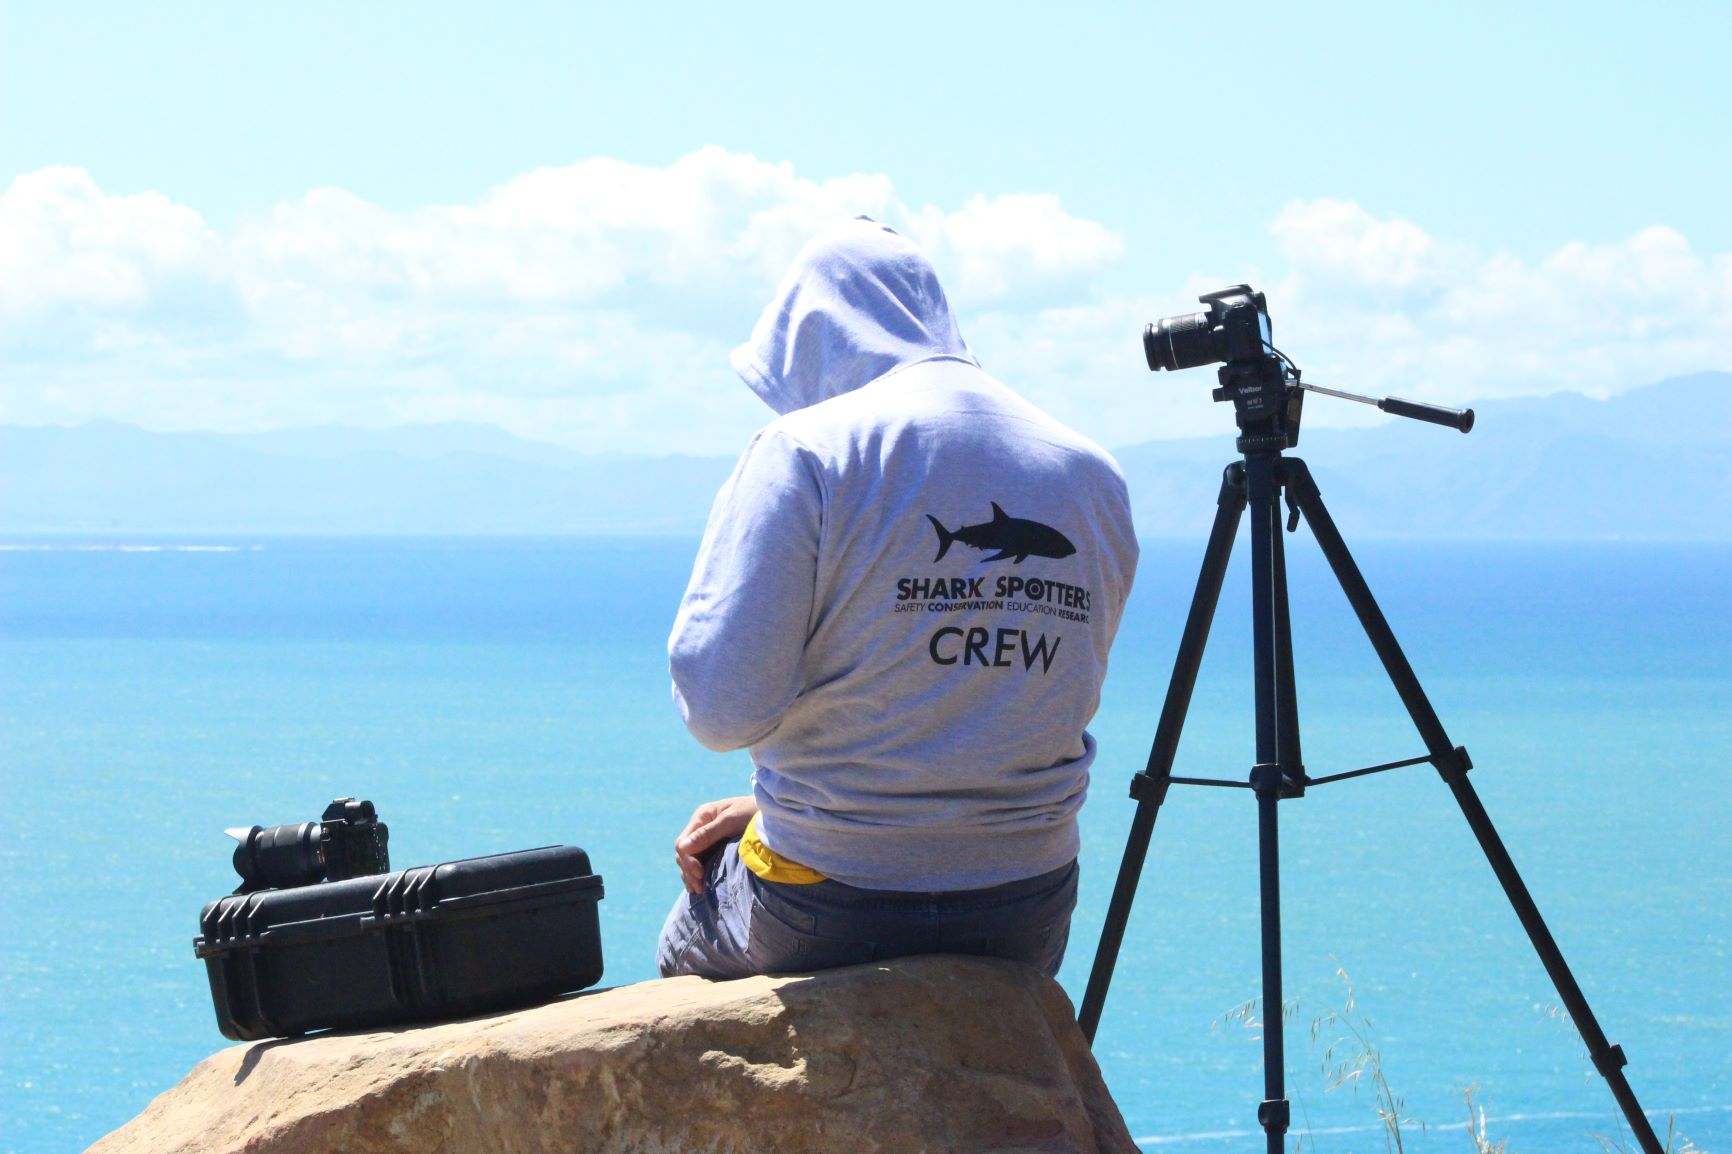 efc1af548d5c Fixed cameras will be used to collect footage of sharks in Fish Hoek bay  (c) Shark Spotters